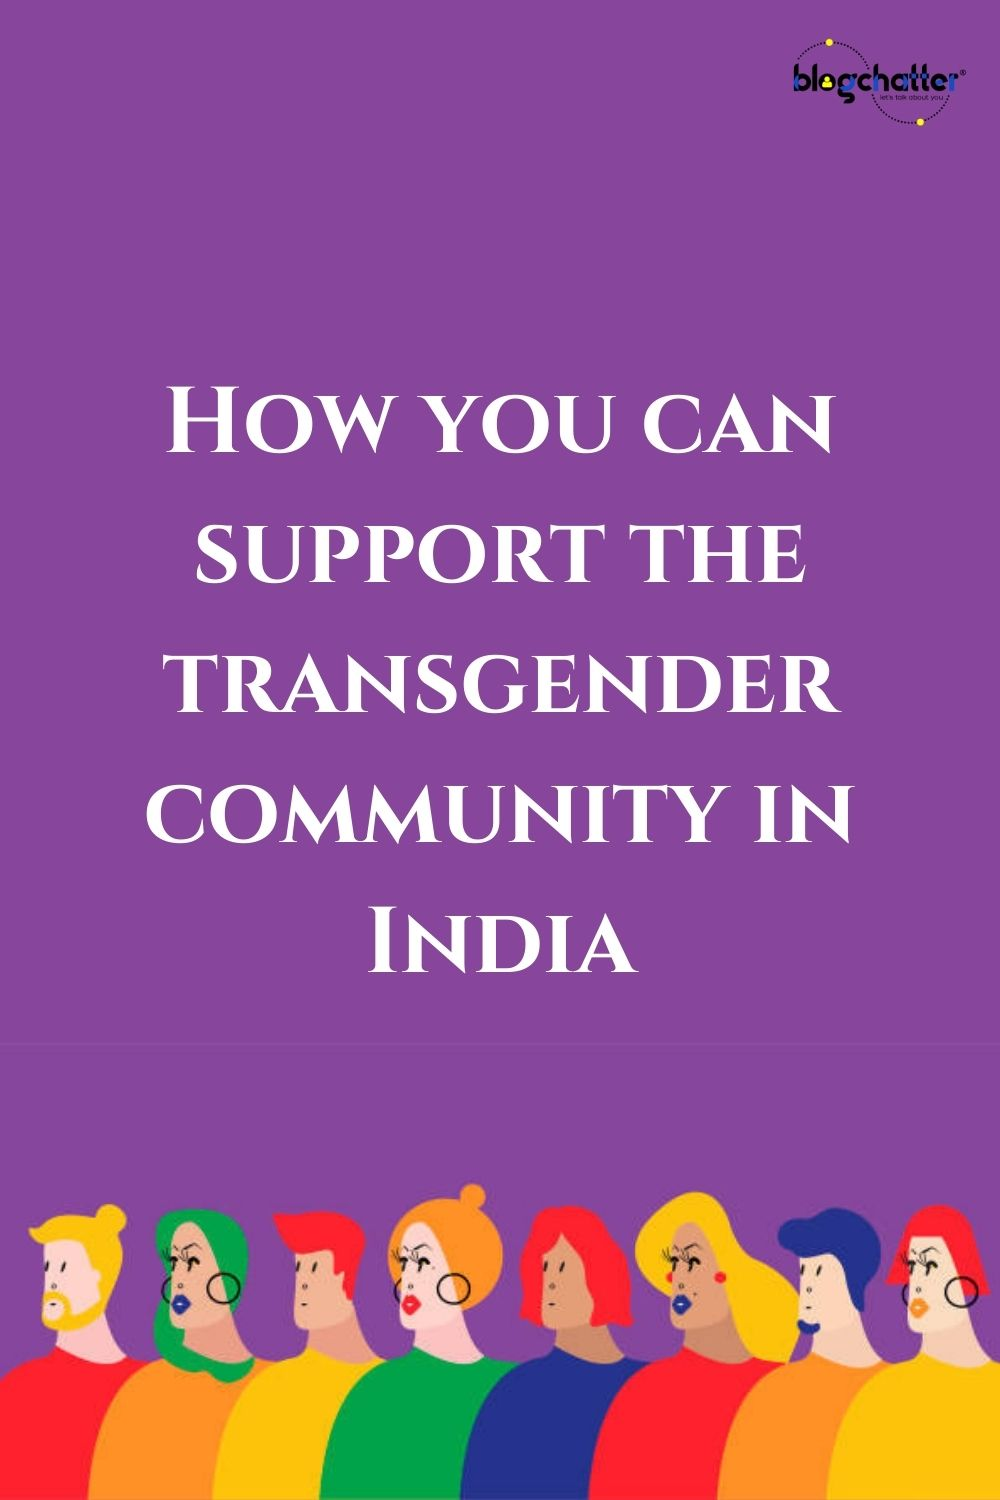 How you can support the transgender community in India